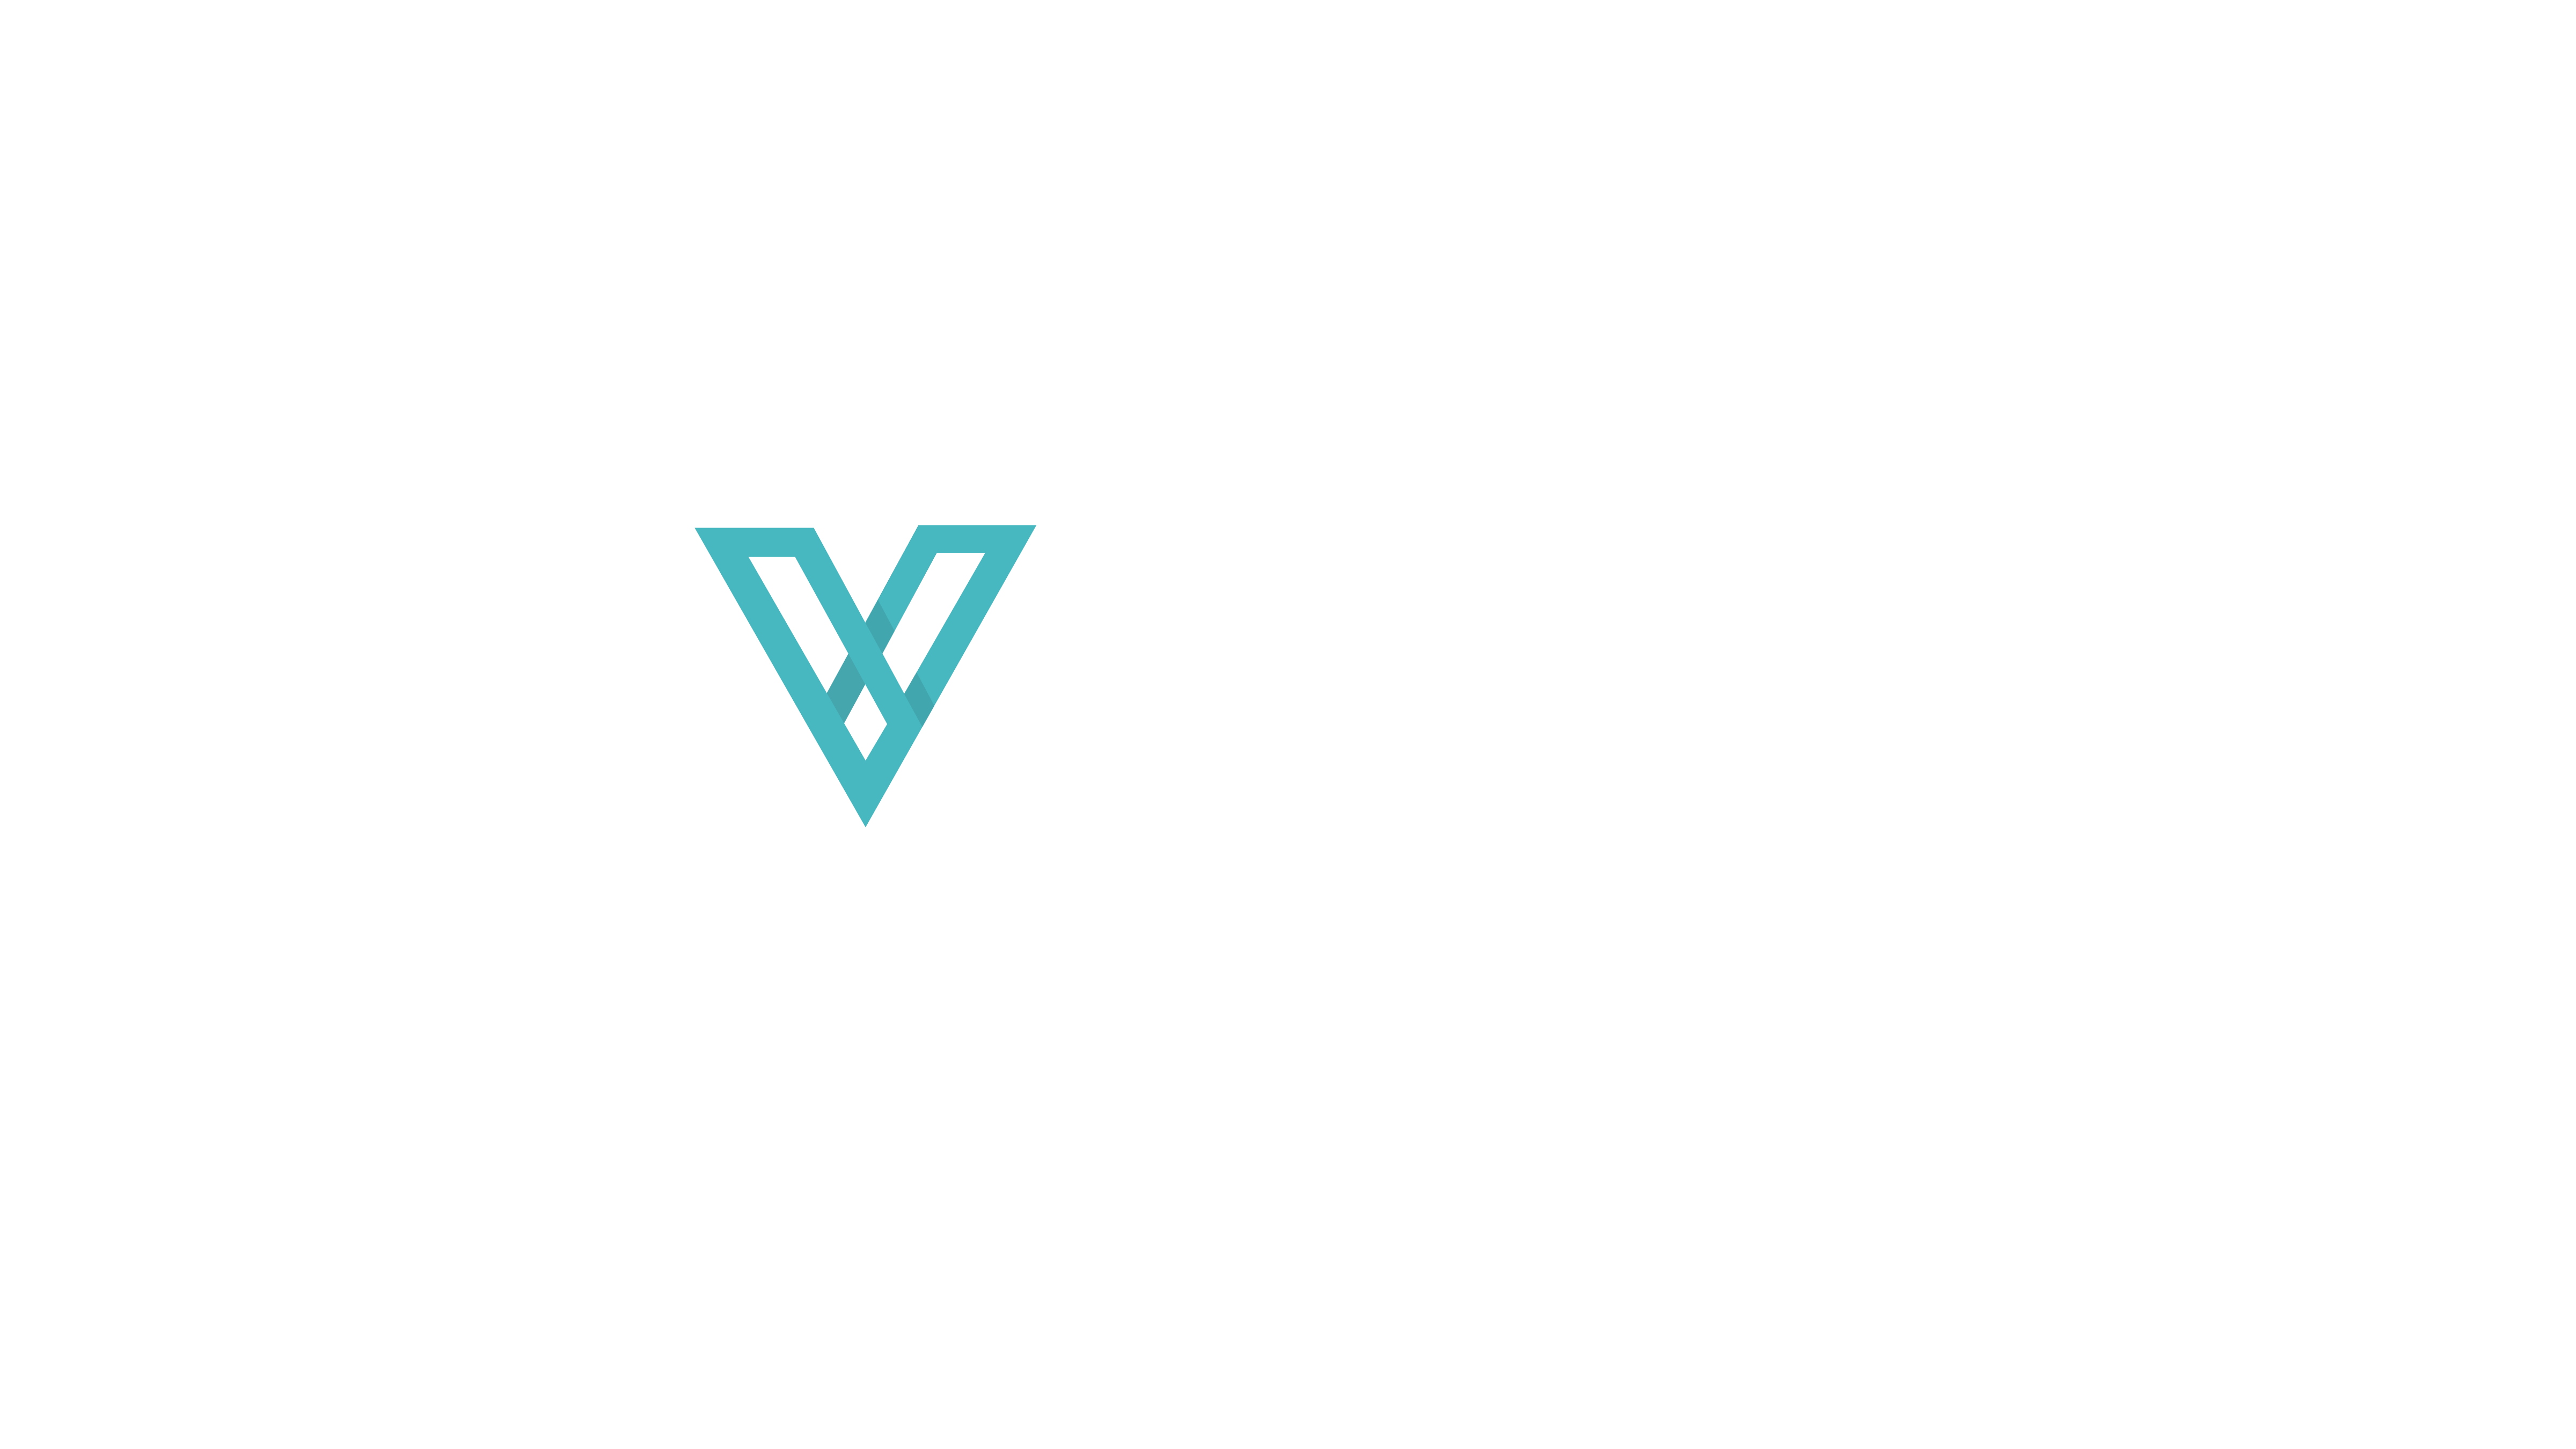 logo-bottom-vue-wcs-window-cleaner